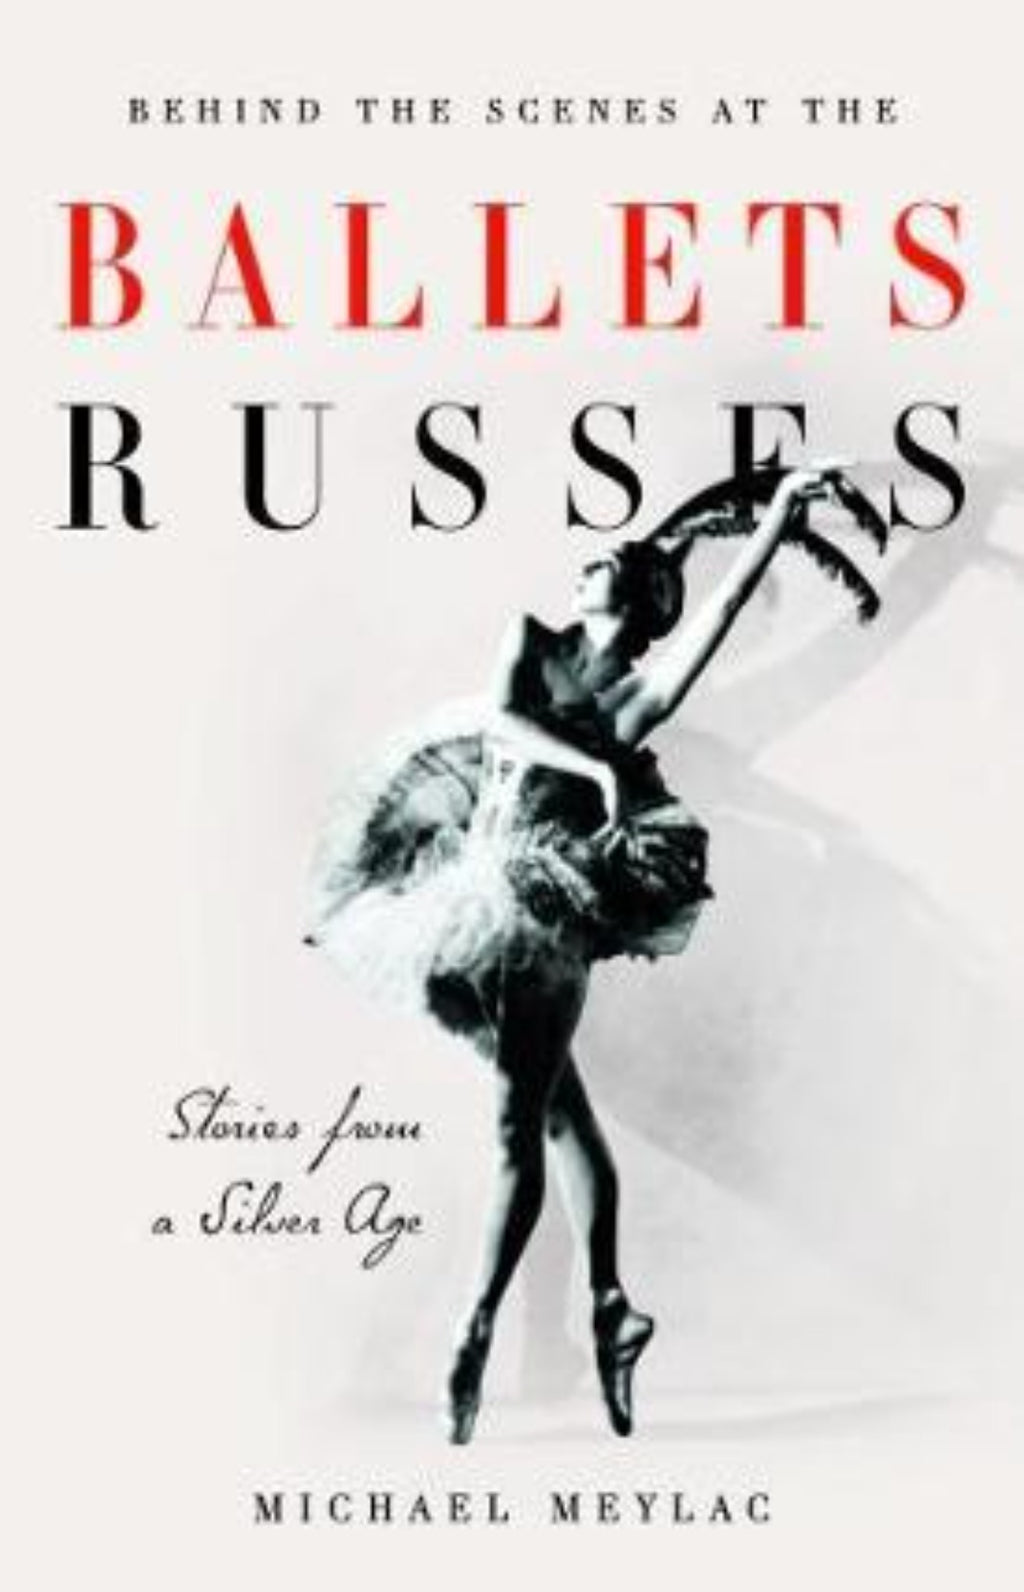 Behind the Scenes at the Ballets Russes : Stories from a Silver Age